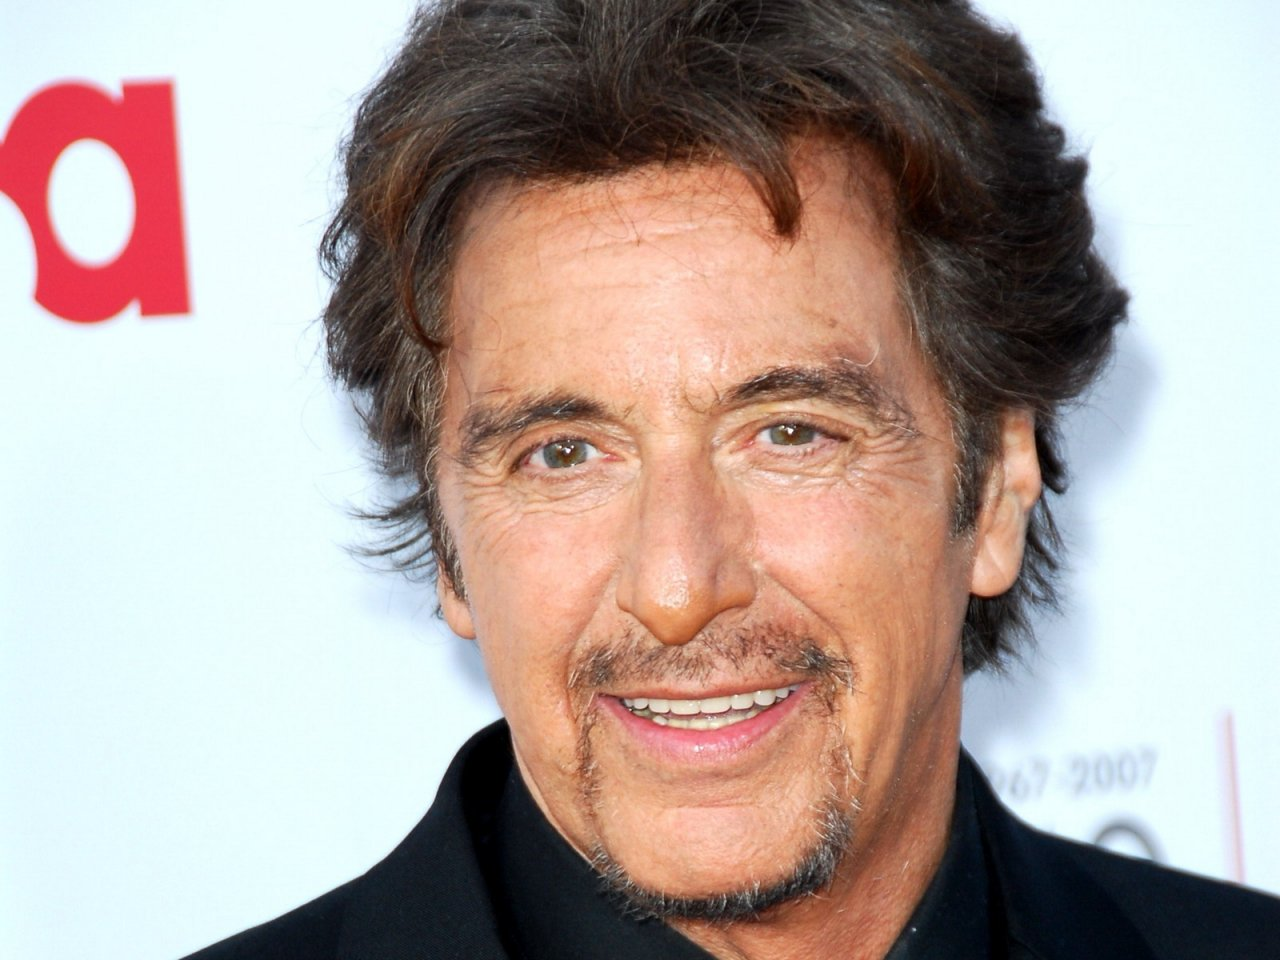 photo Al Pacino telechargement gratuit